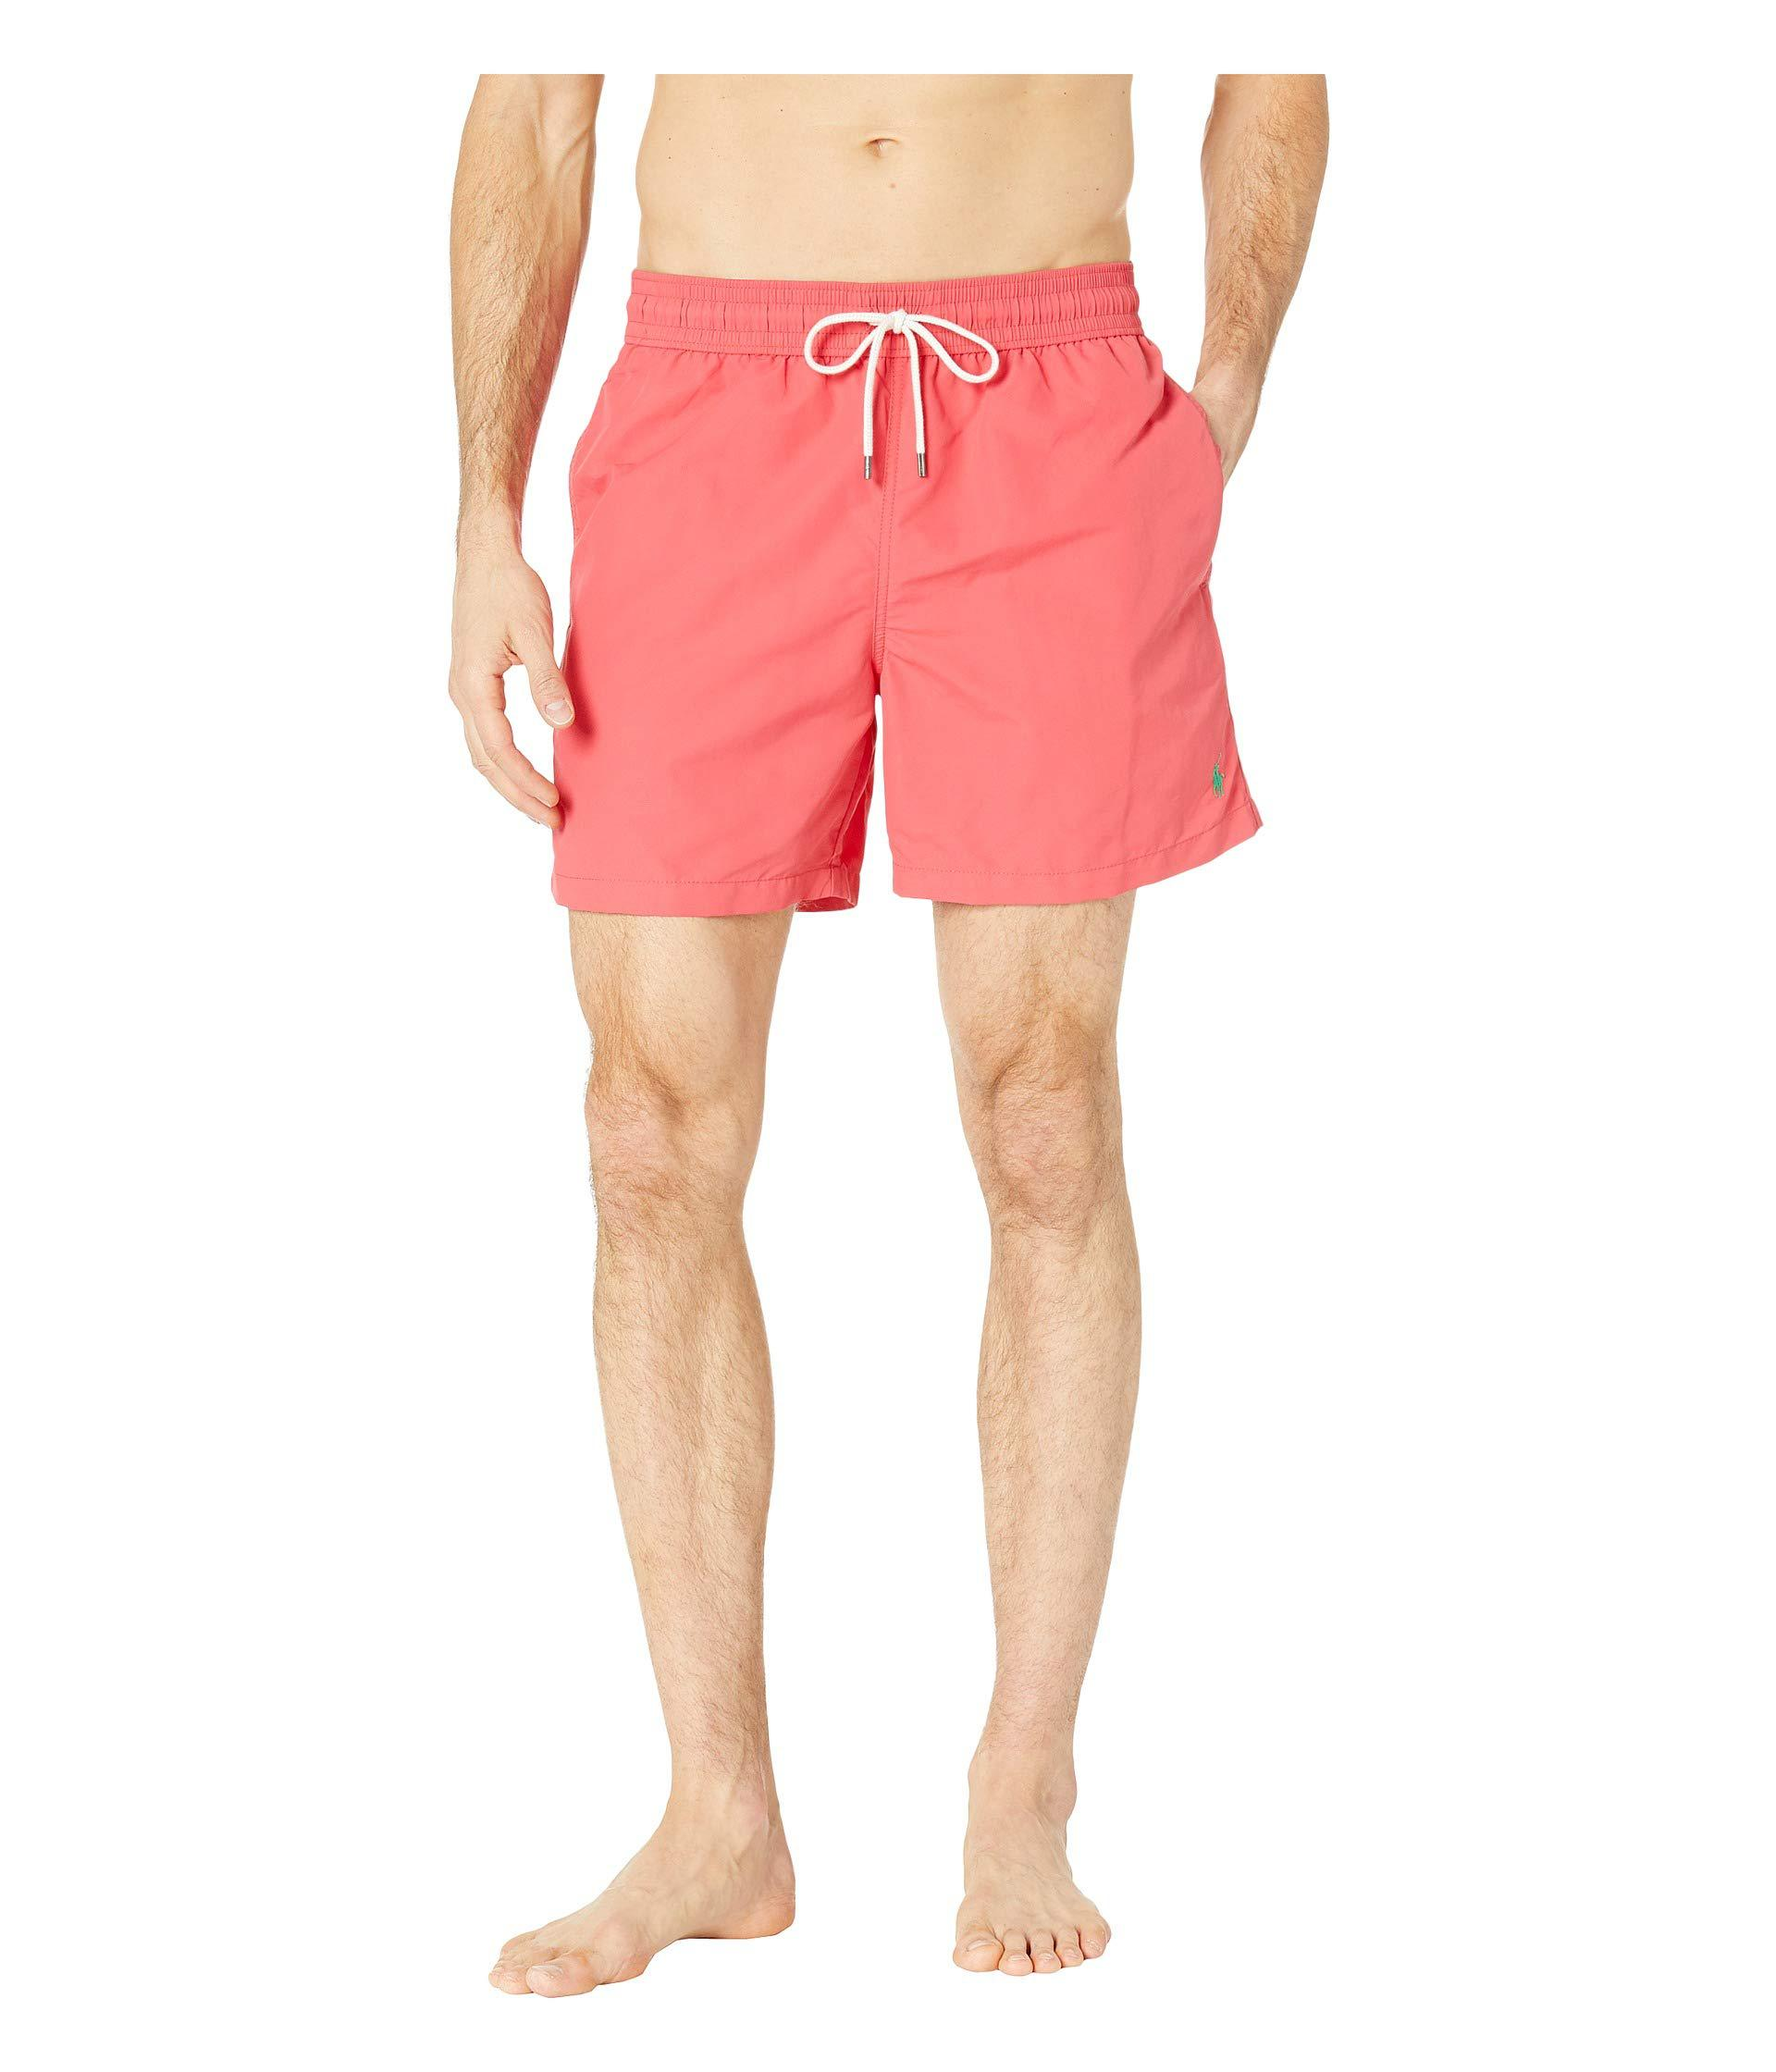 1683409b25 discount ralph lauren kids traveler cotton blend trunk swimwear bsr pink  kids swimshortsralph 00657 7497e; low price polo ralph lauren 706f2 3d878